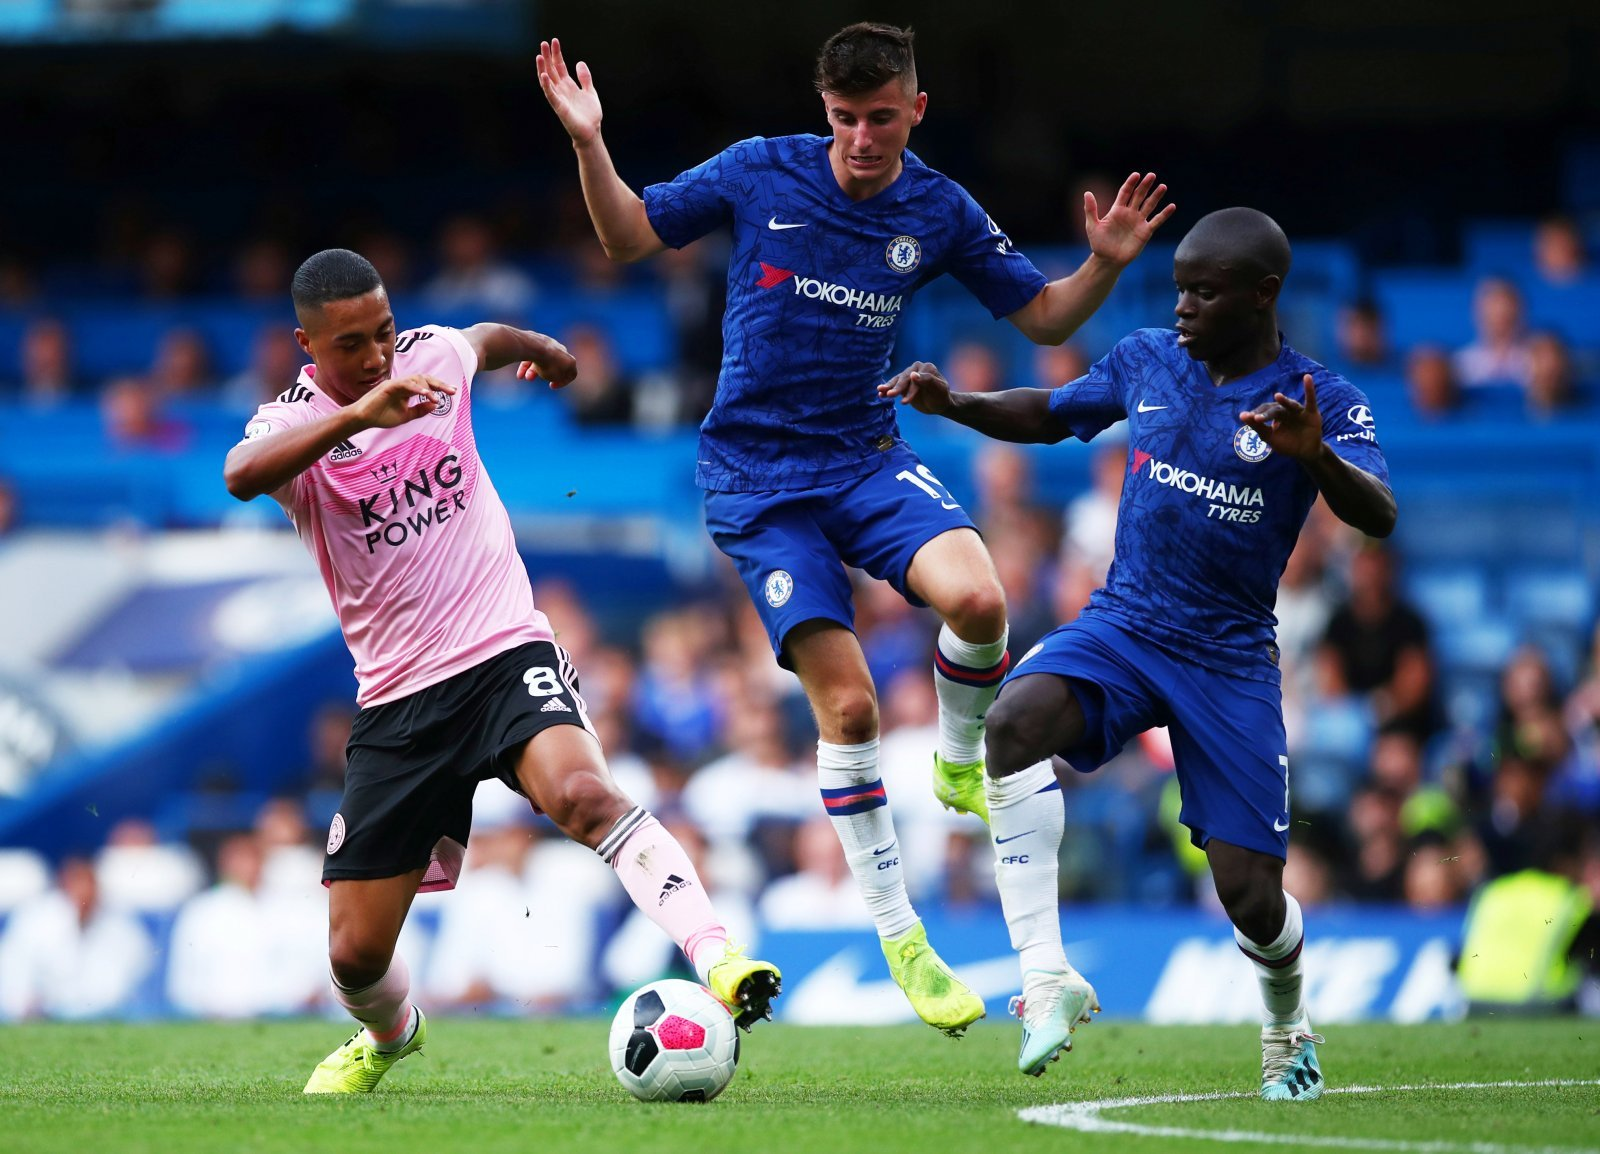 Chelsea: N'Golo Kante doubtful for Norwich City trip with ankle injury